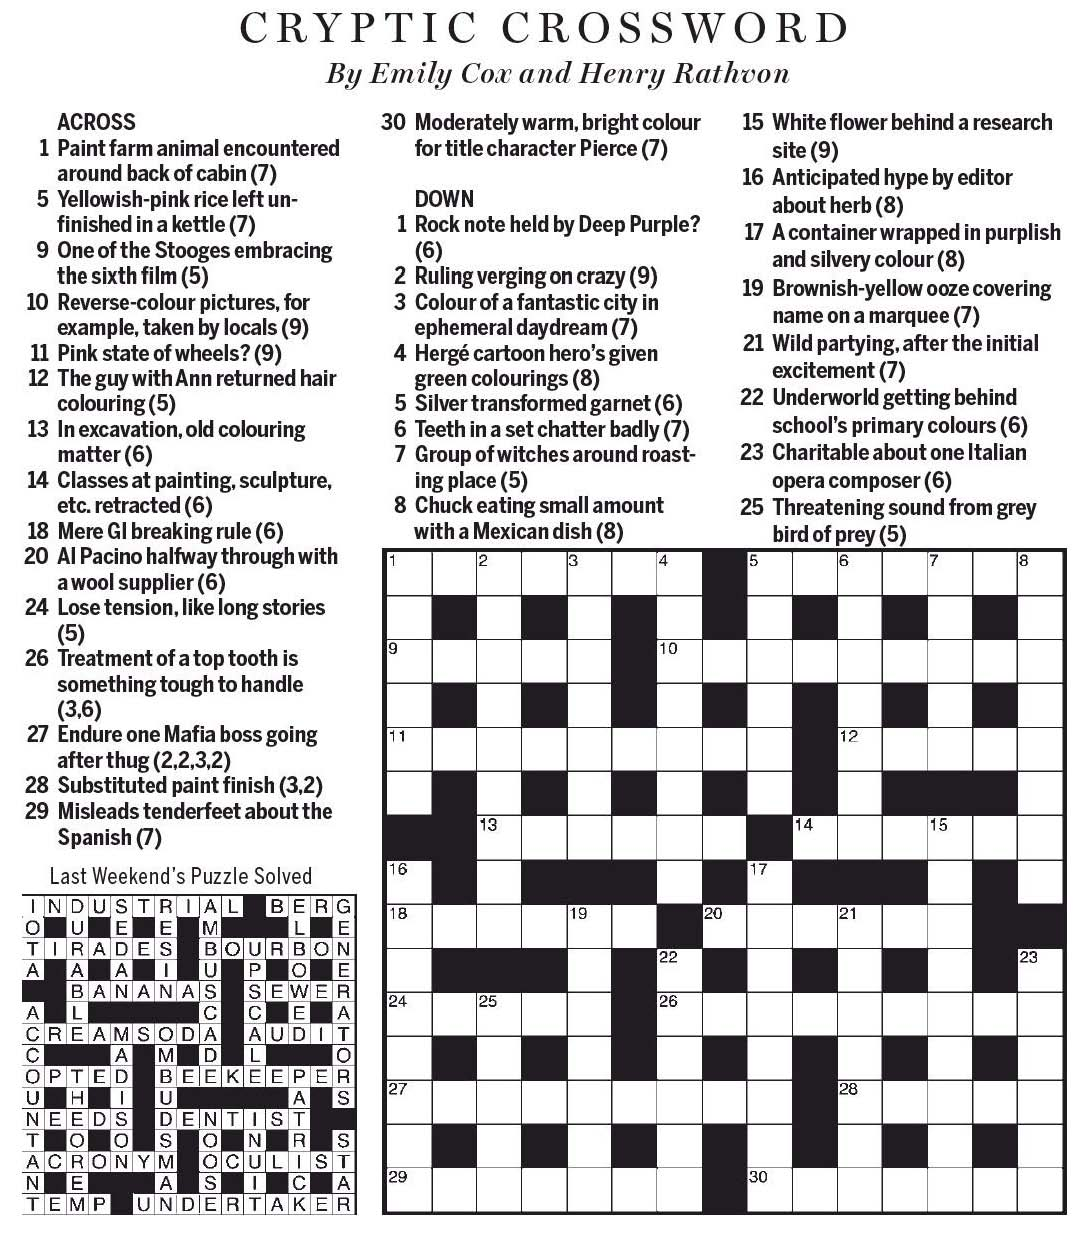 Introduction  sc 1 st  National Post Cryptic Crossword Forum & National Post Cryptic Crossword Forum: Saturday July 29 2017 ... 25forcollege.com